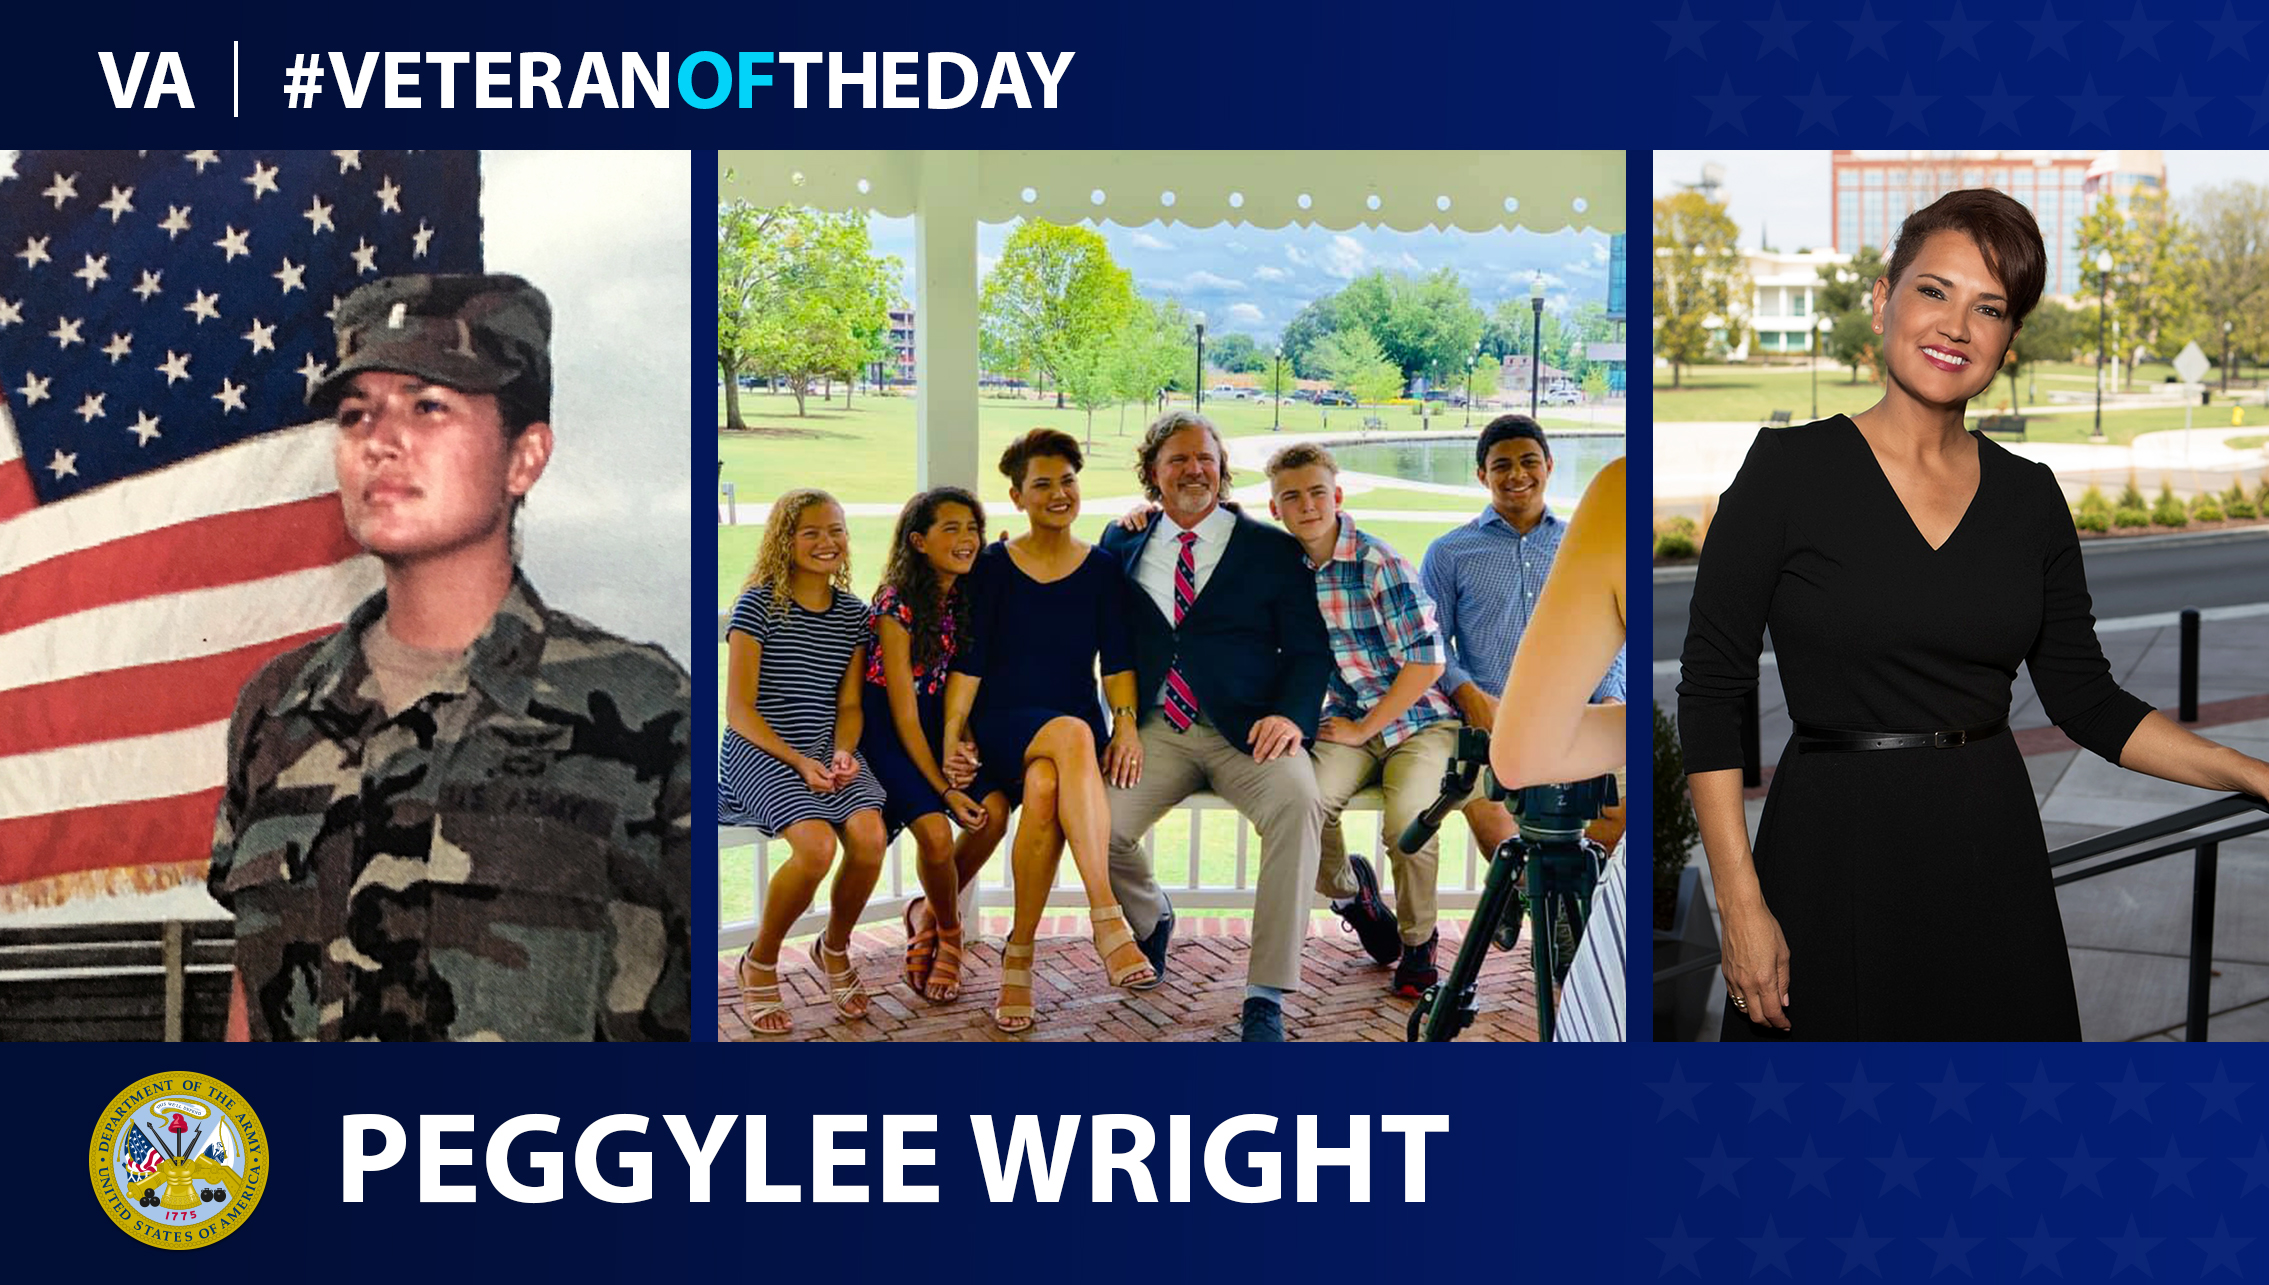 Veteran of the Day...PeggyLee Wright